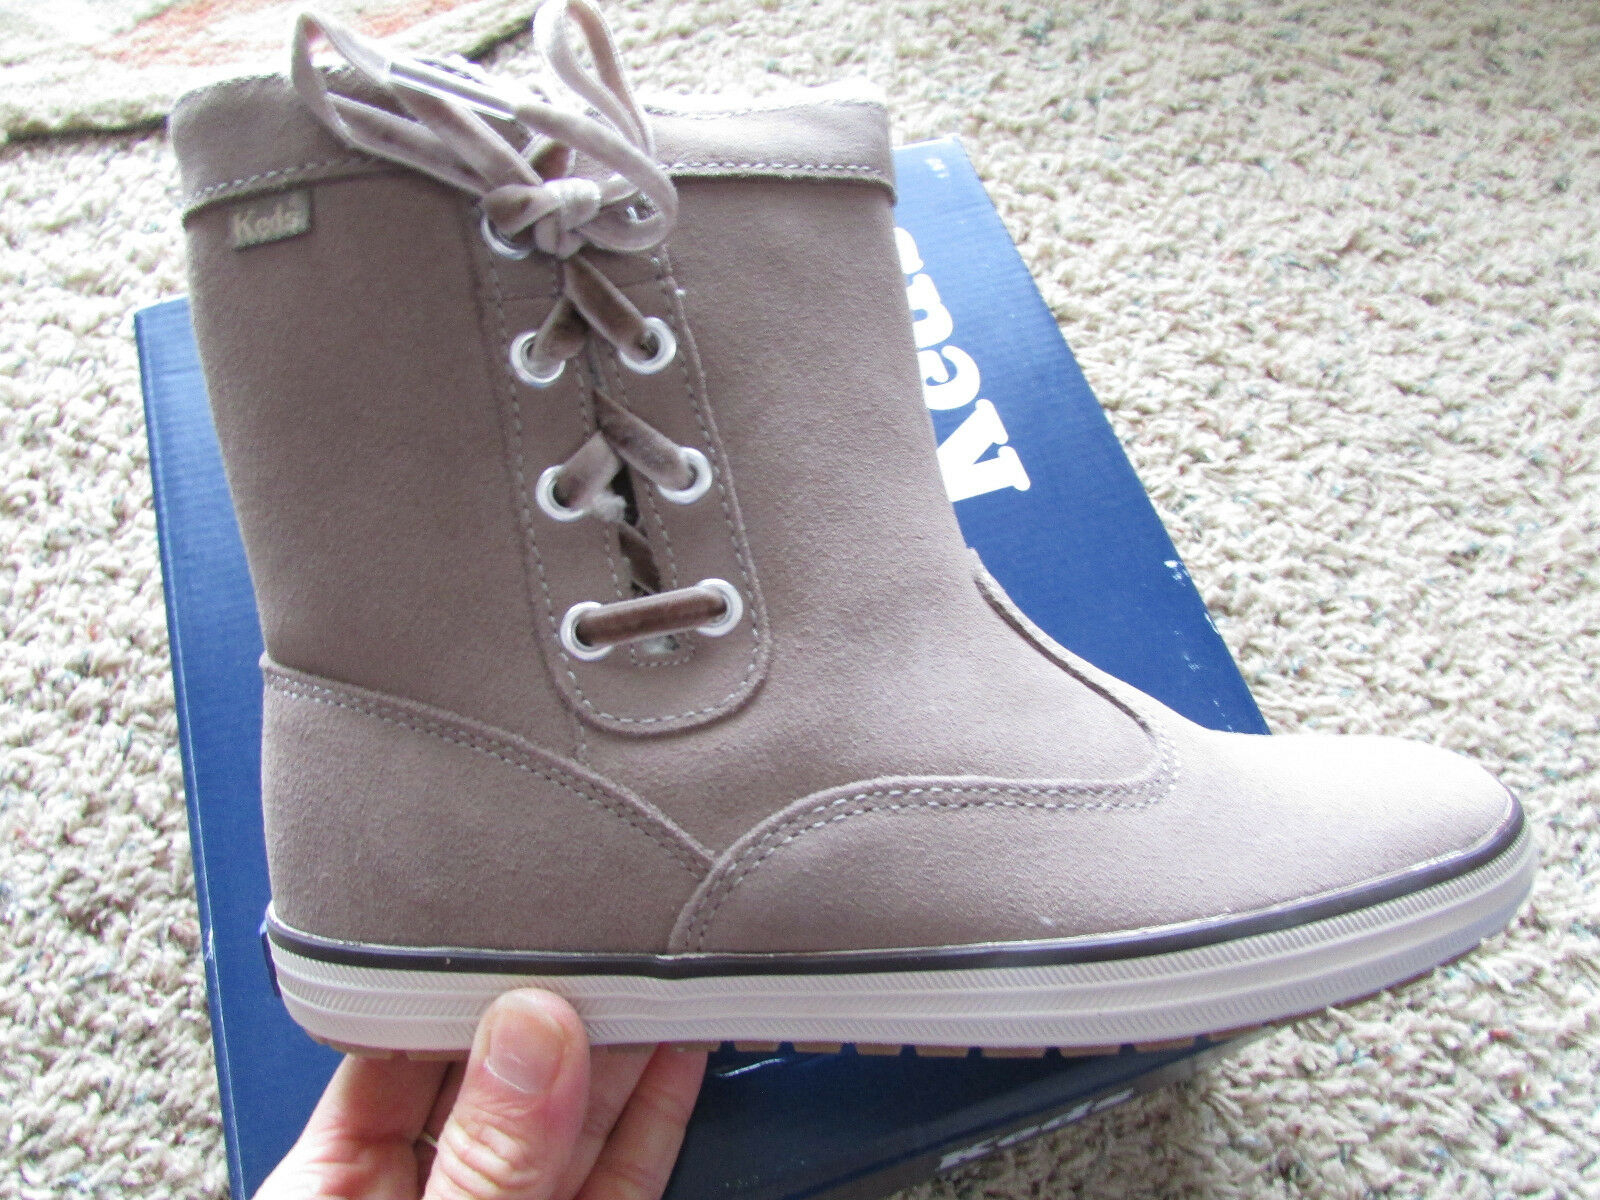 NEW KEDS SUNNYSIDE LEATHER ANKLE BOOTS